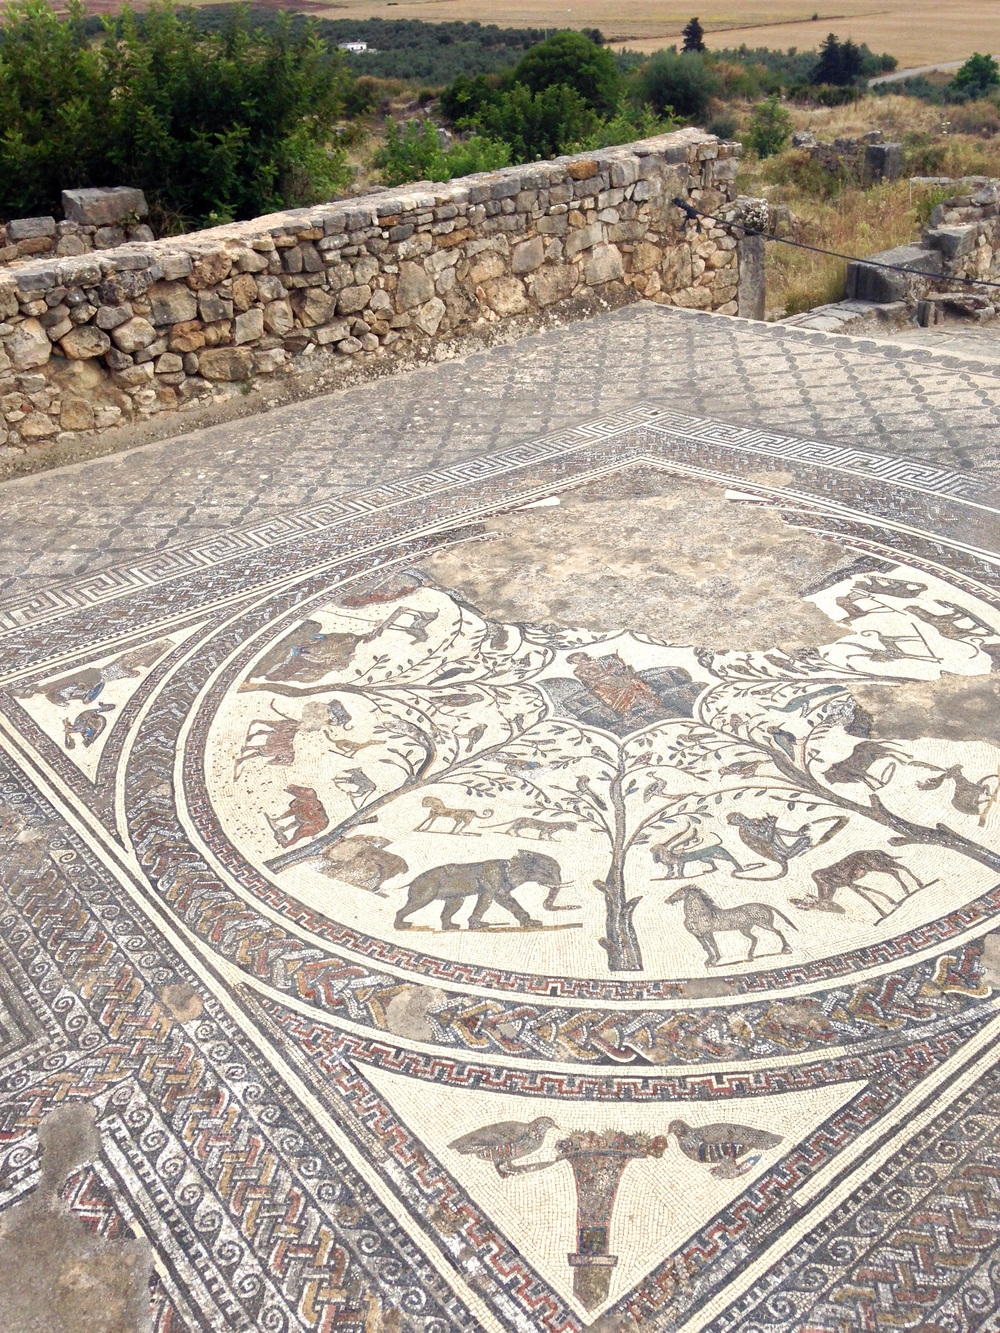 A well-preserved mosaic of Orpheus (center figure) and animals.